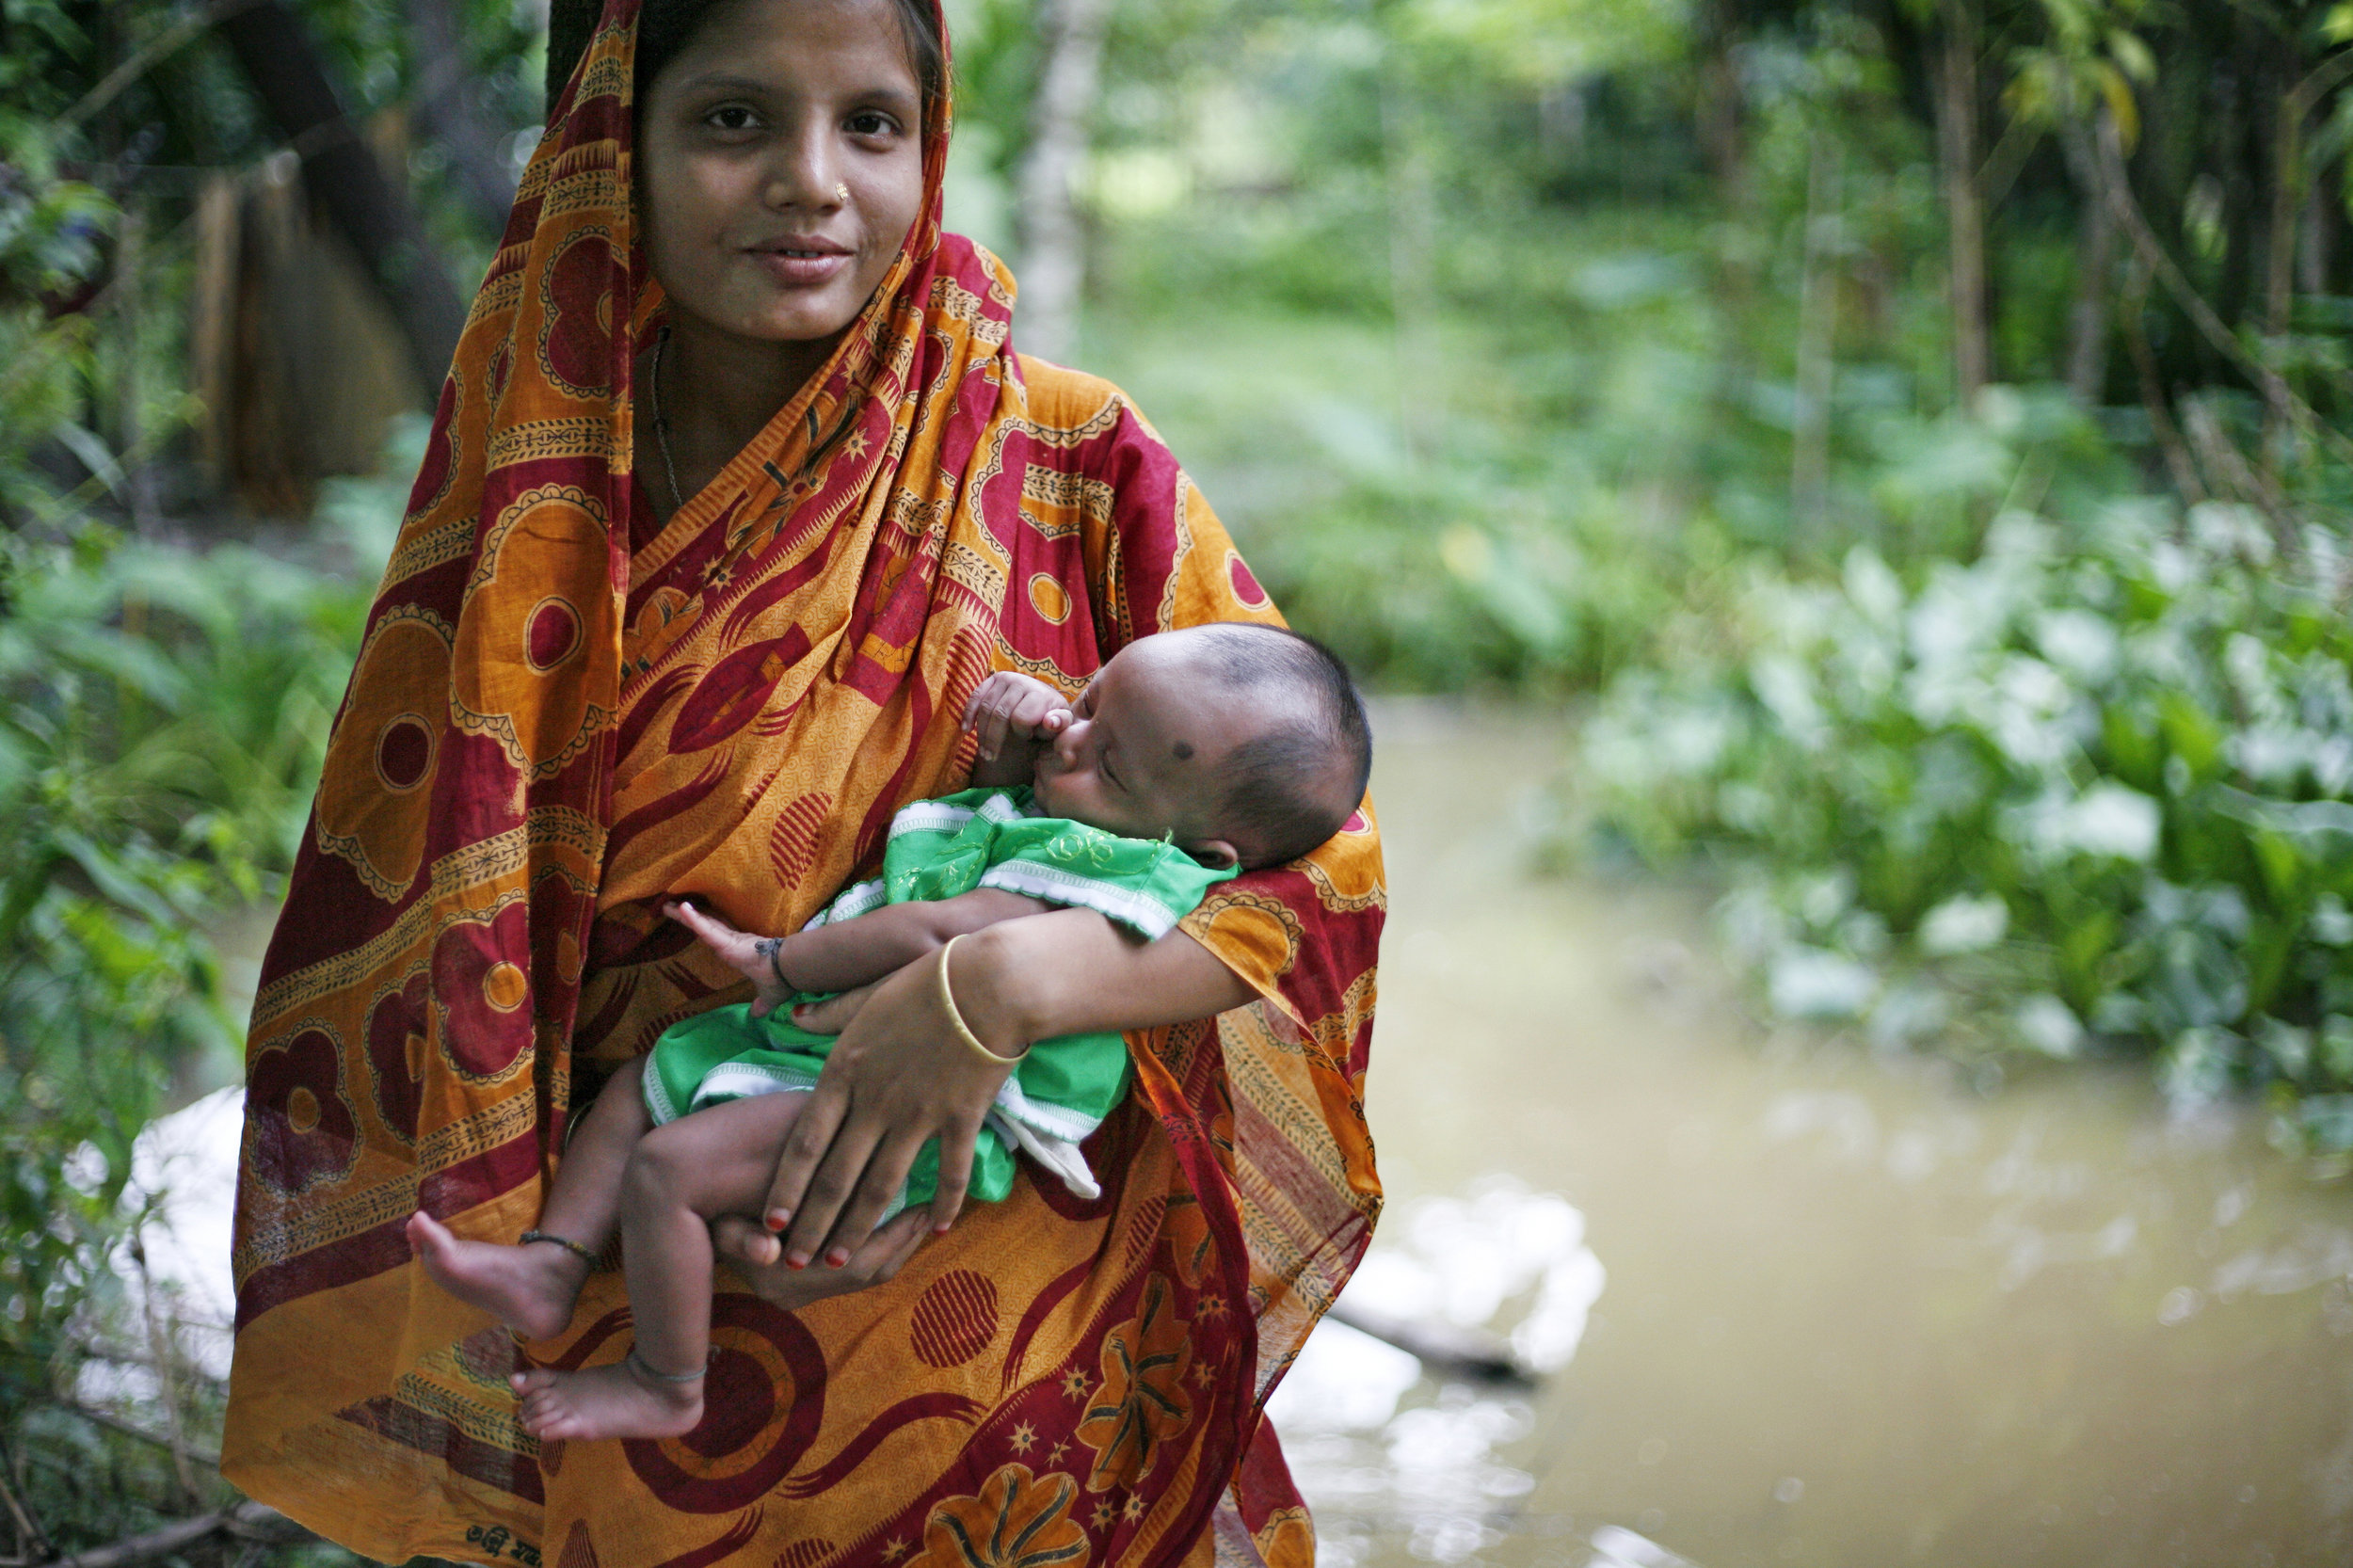 A young mother holds her baby in Bangladesh